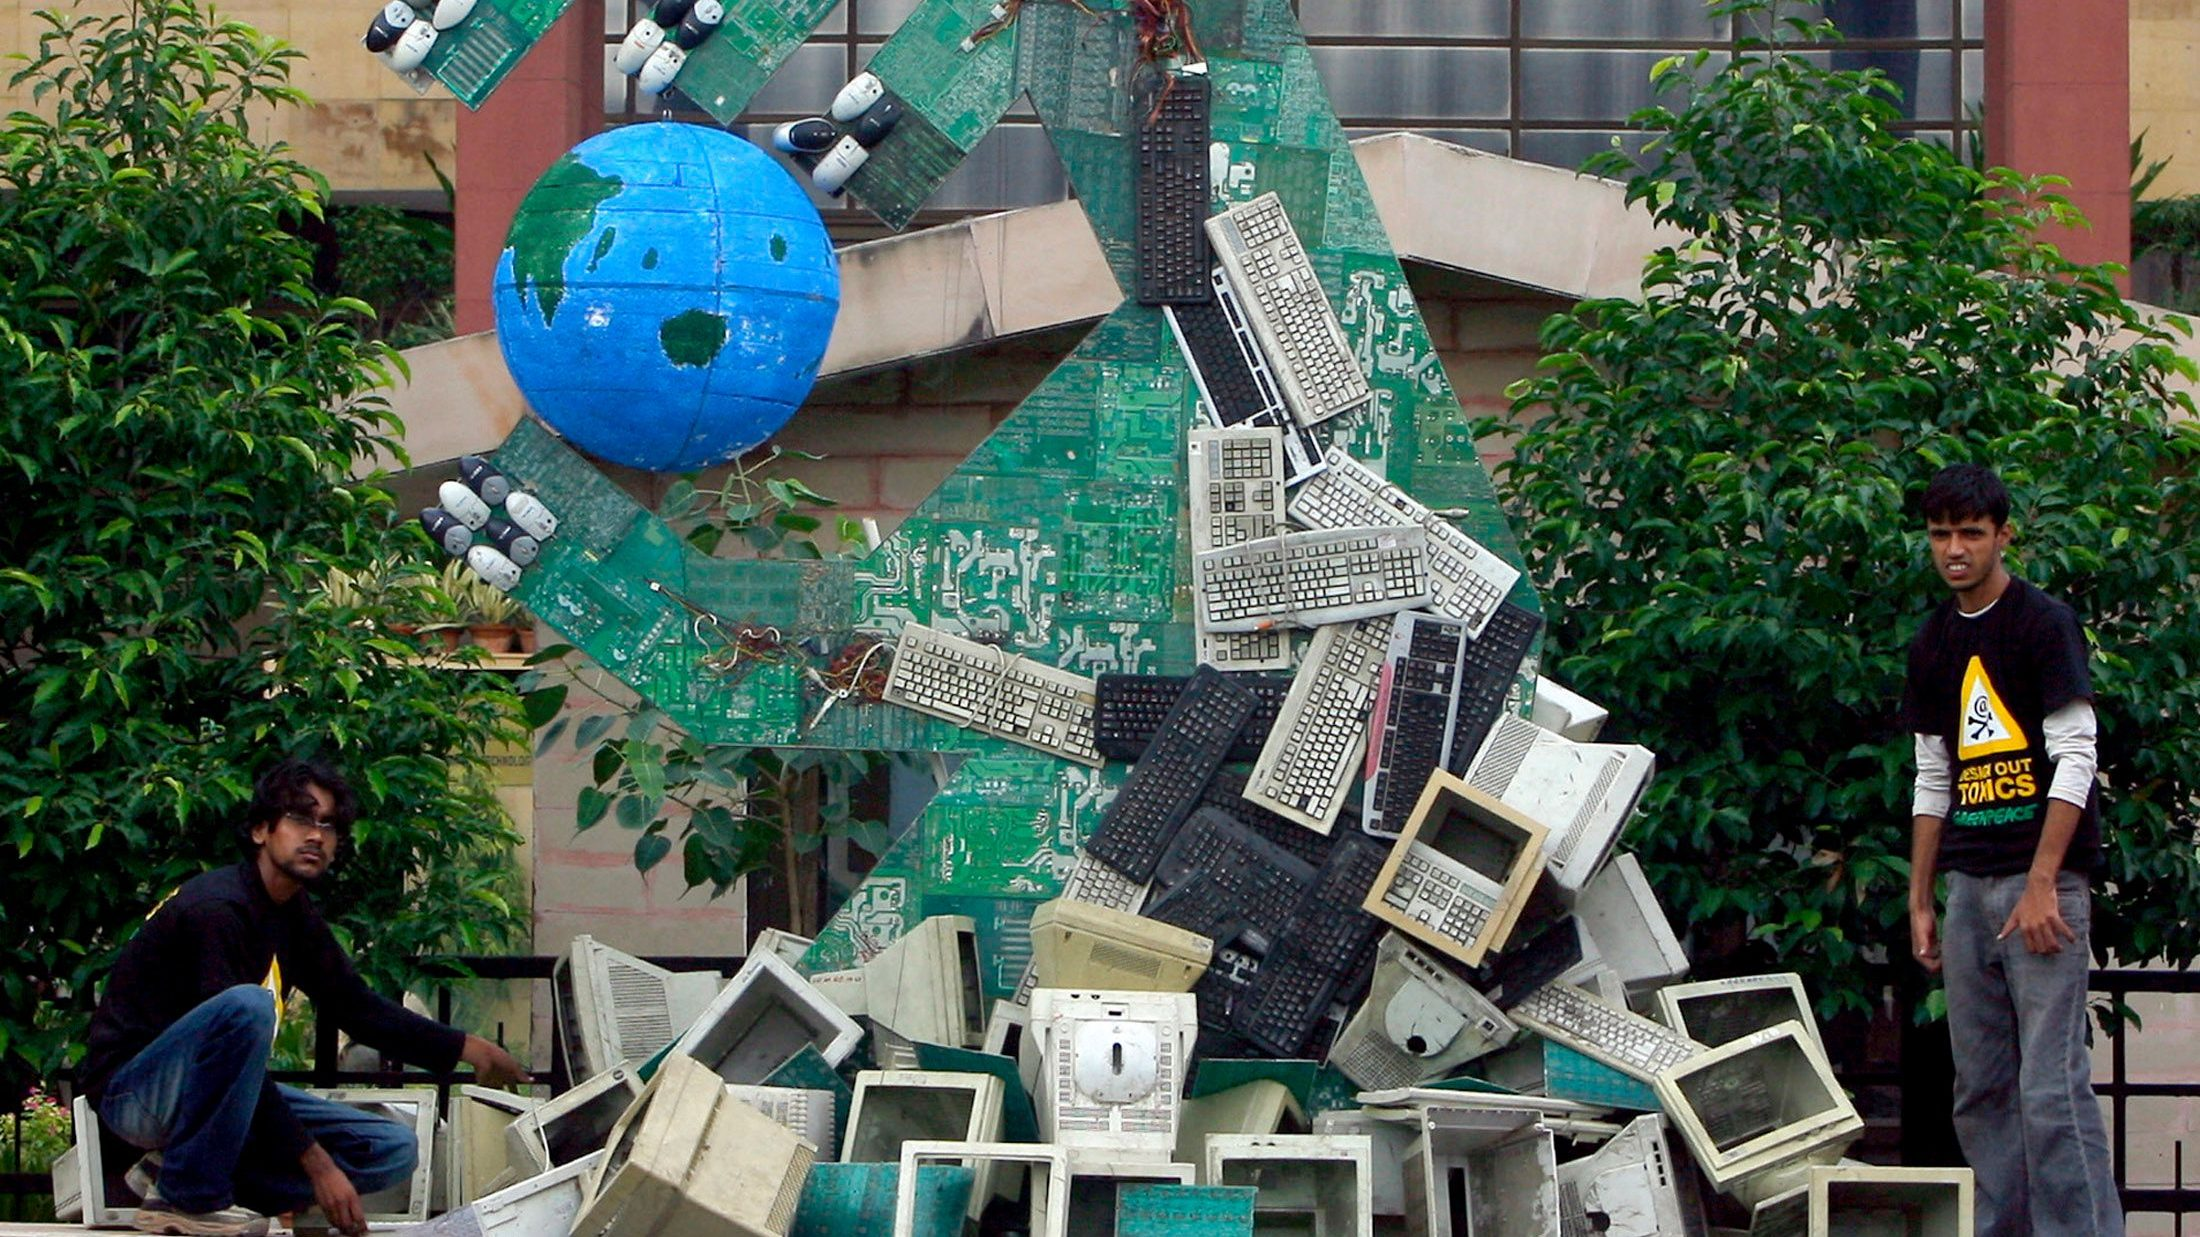 Greenpeace activists set up an art installation during protest in New Delhi